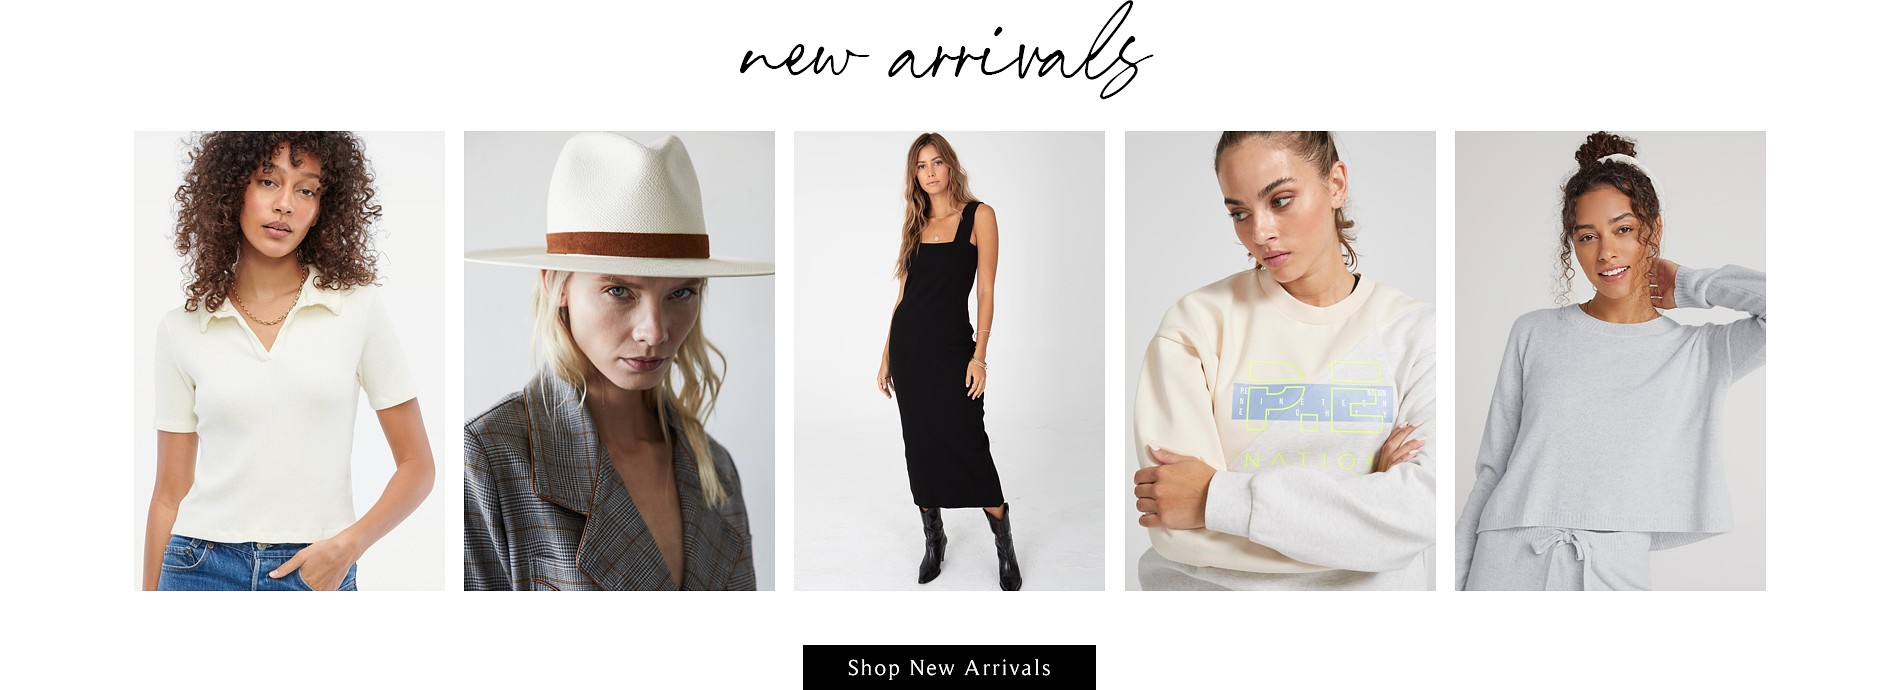 New sweaters, hats, dresses, activewear and sleepwear